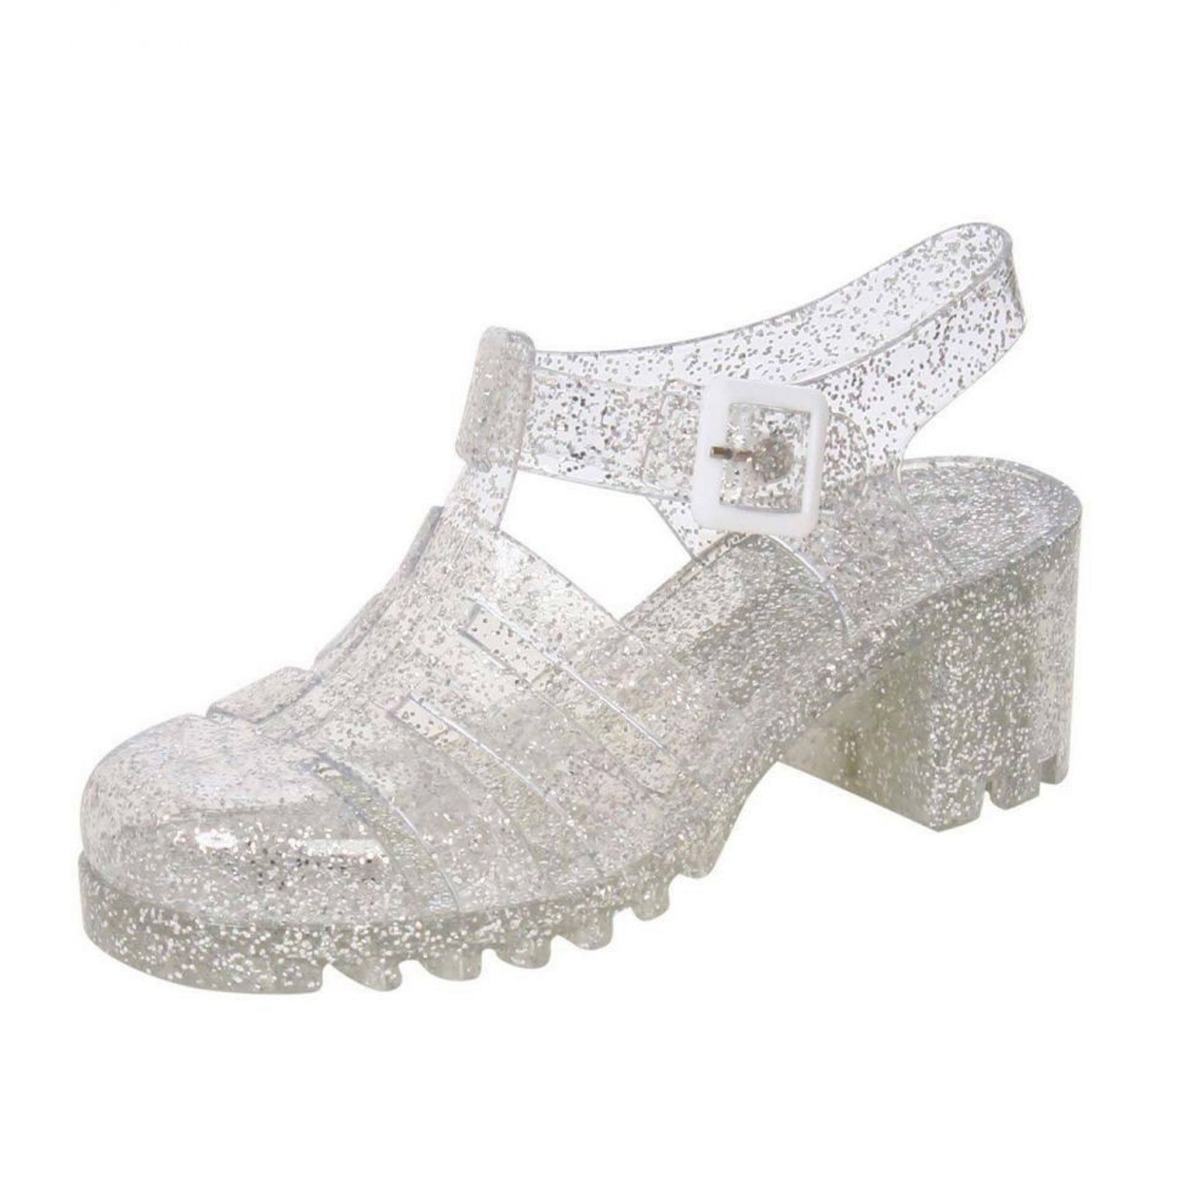 c401389fd6c8 Womens Flat   Heeled Gladiator Jelly Shoes Sandals with Buckle UK ...